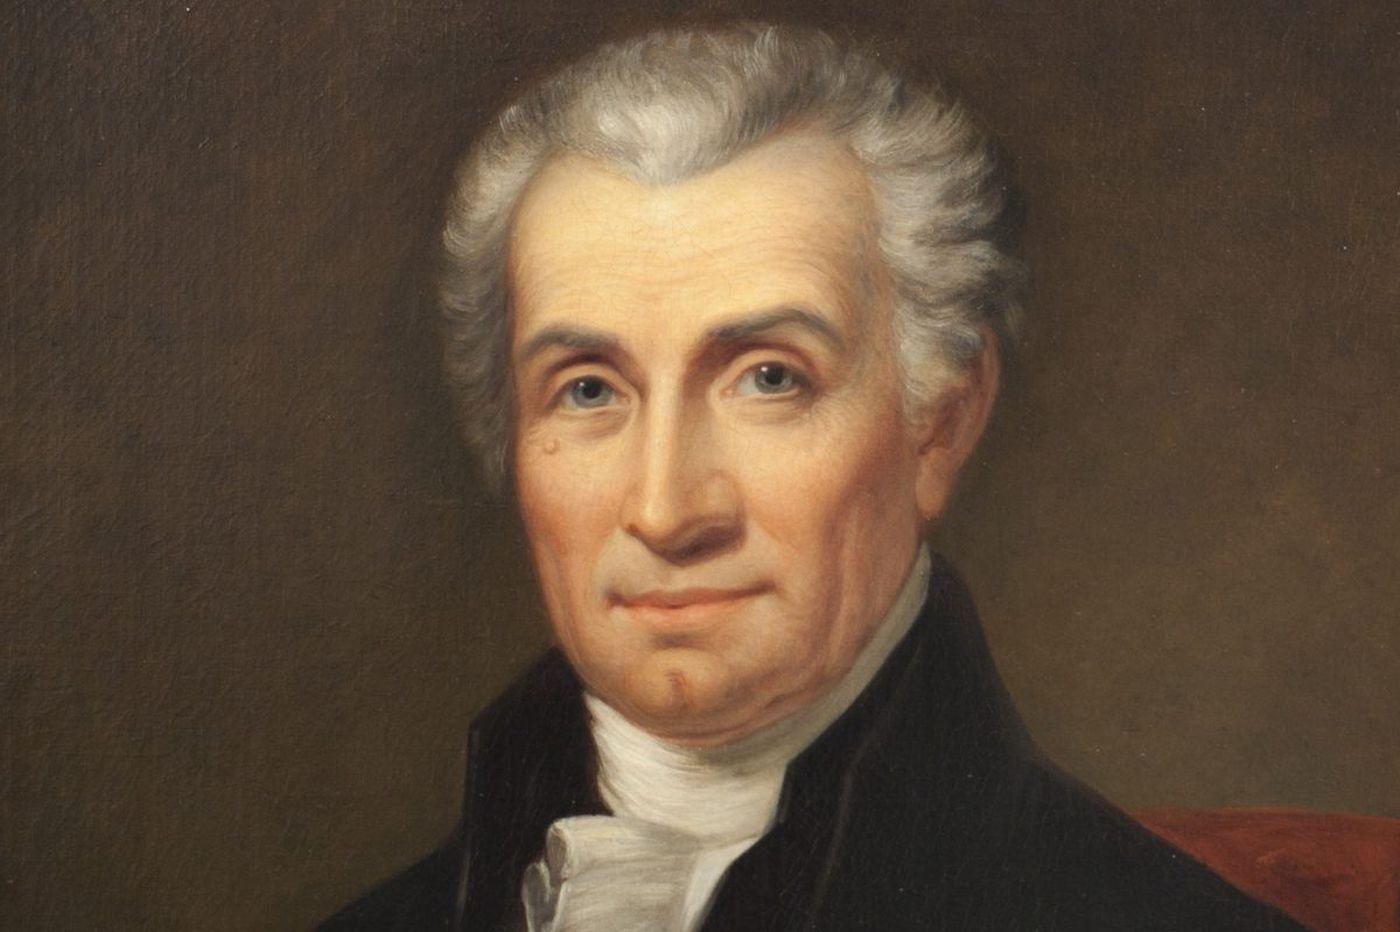 Medical mystery: Was it really malaria that plagued our fifth president?